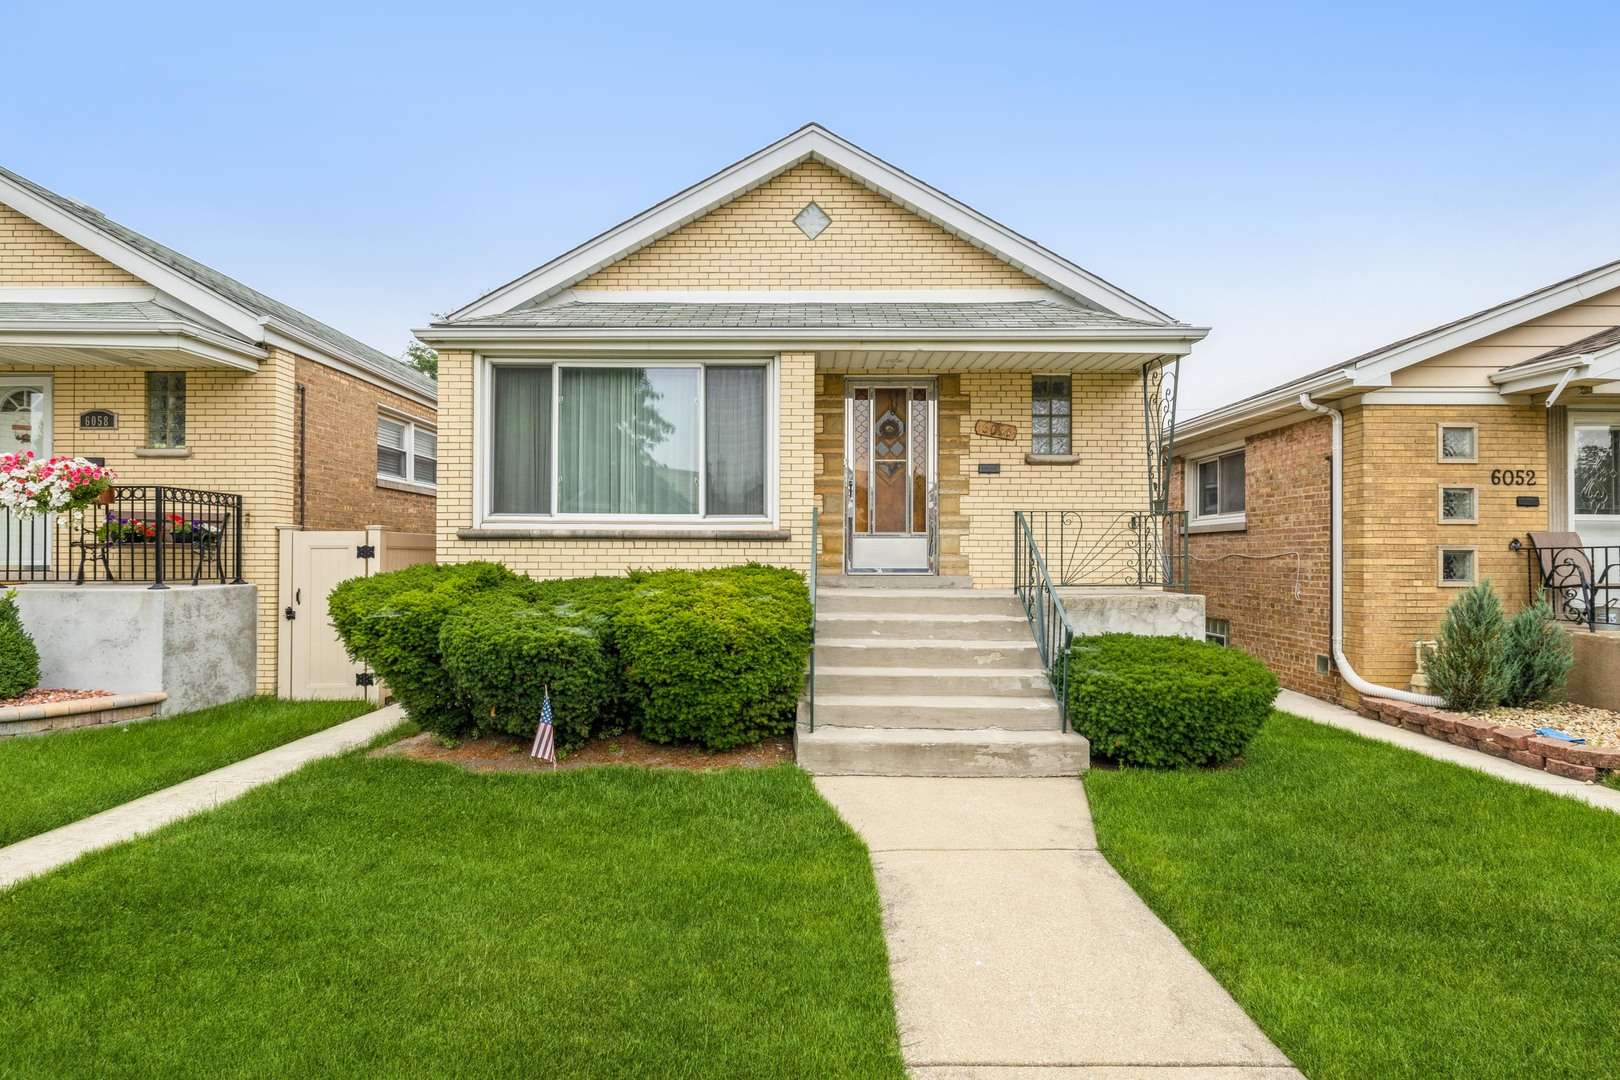 6054 S Mayfield Avenue, Chicago IL 60638